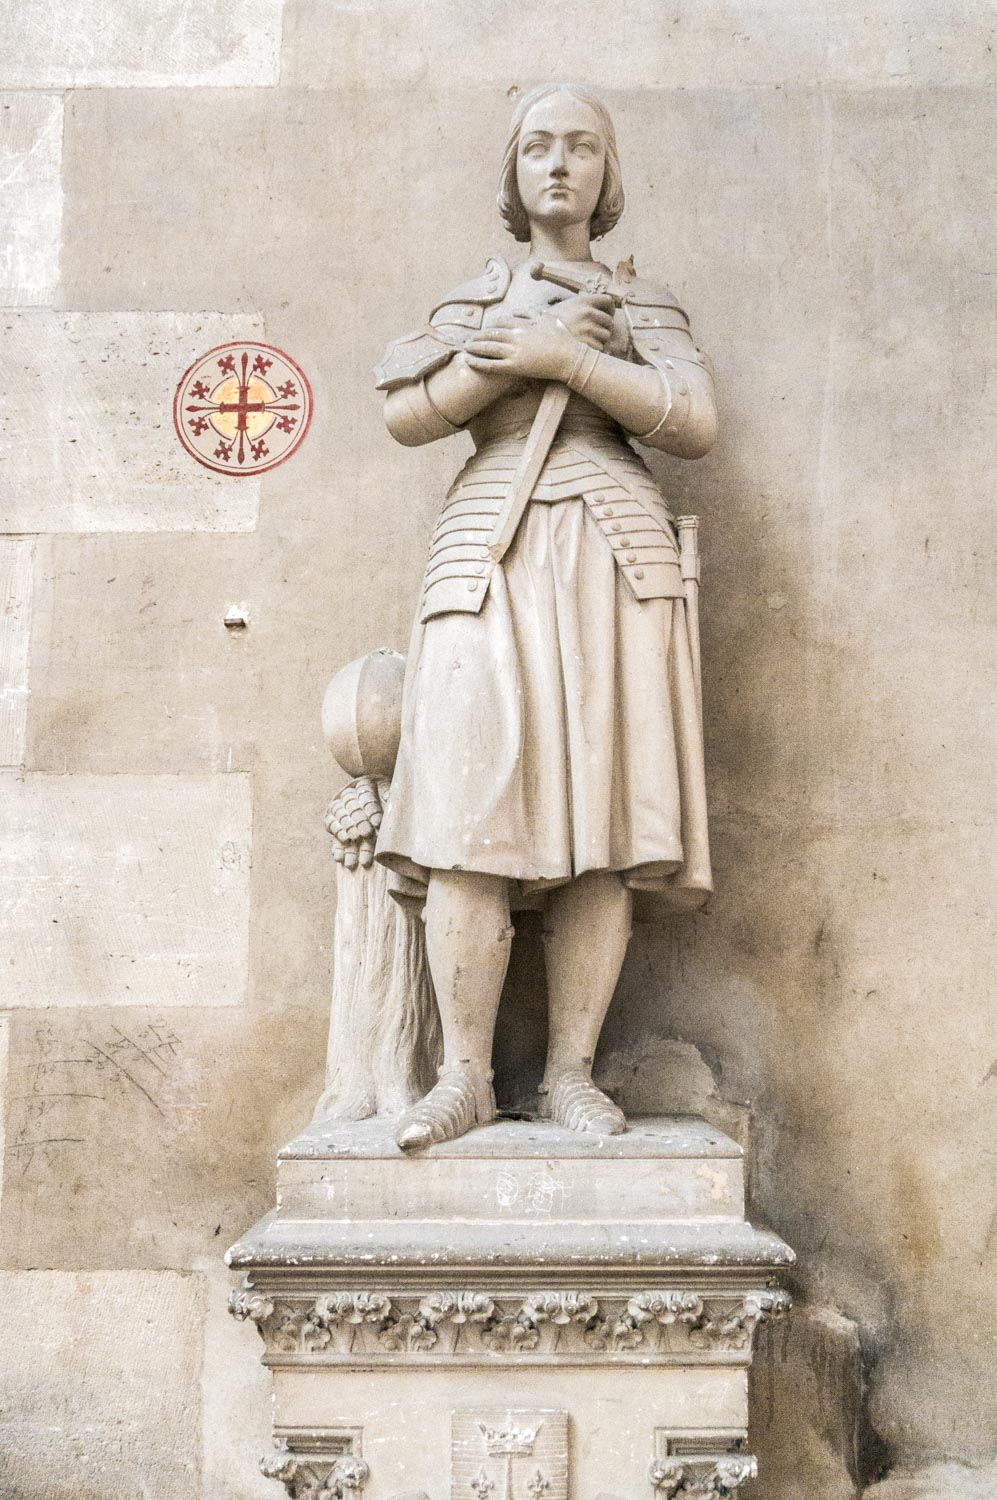 One of many Jeanne d'Arc statues in the churches of France.